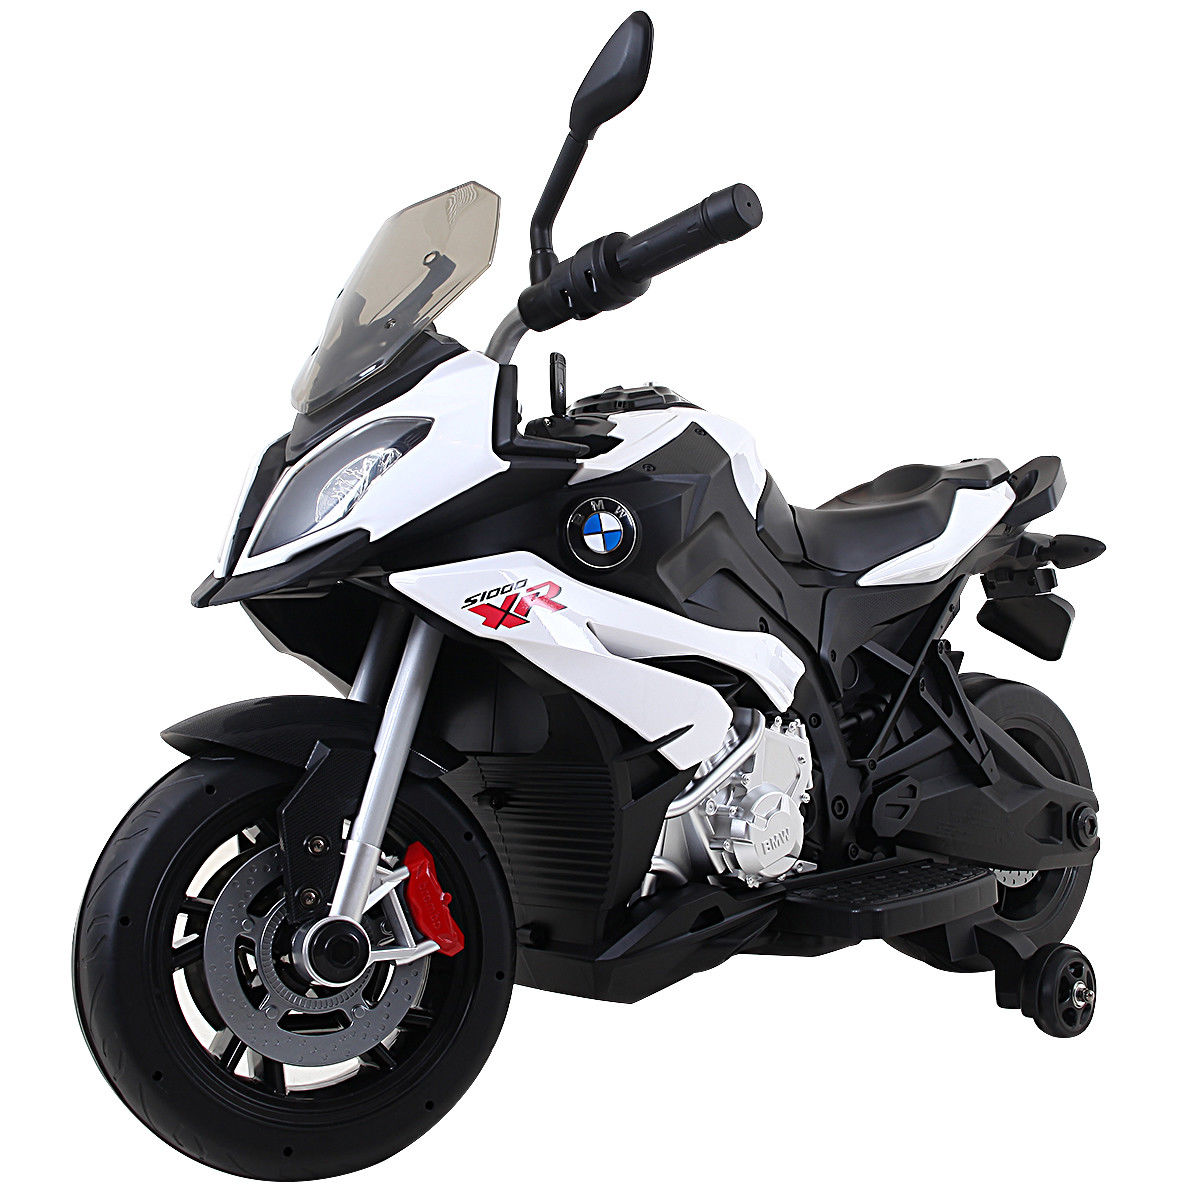 Costway Xmas Gift Kids Ride On Motorcycle Licensed BMW 12V Battery Powered Toy w/Training Wheel - Walmart.com  sc 1 st  Walmart & Costway Xmas Gift Kids Ride On Motorcycle Licensed BMW 12V Battery ...